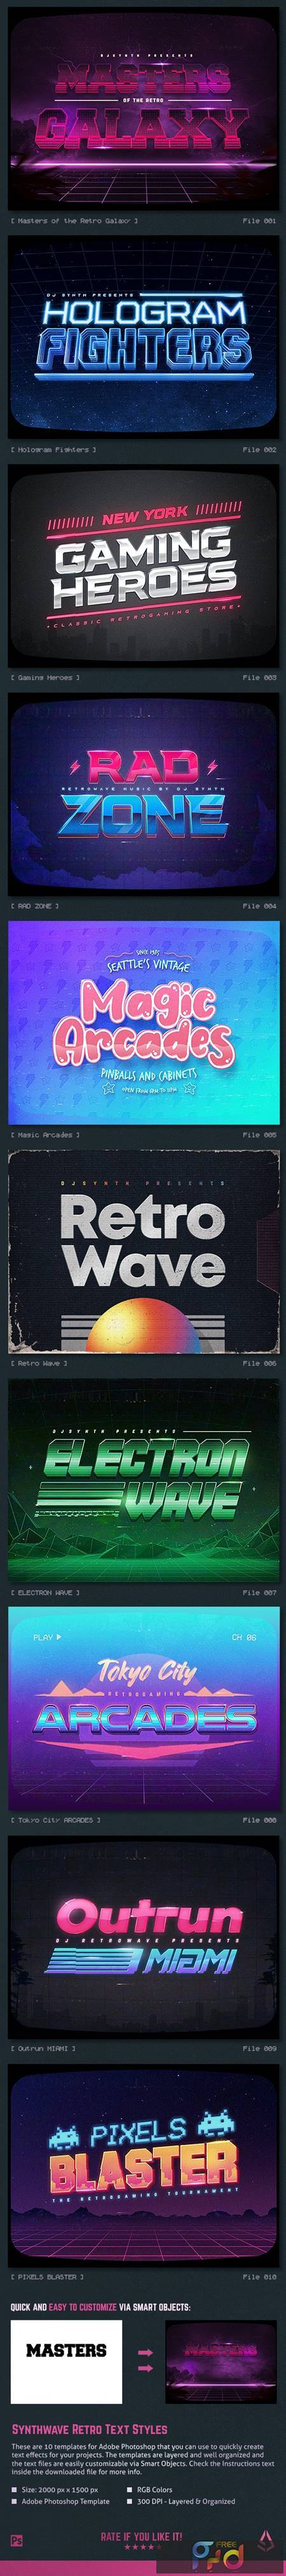 Synthwave 80s Retro Text Effects V3 26742705 1